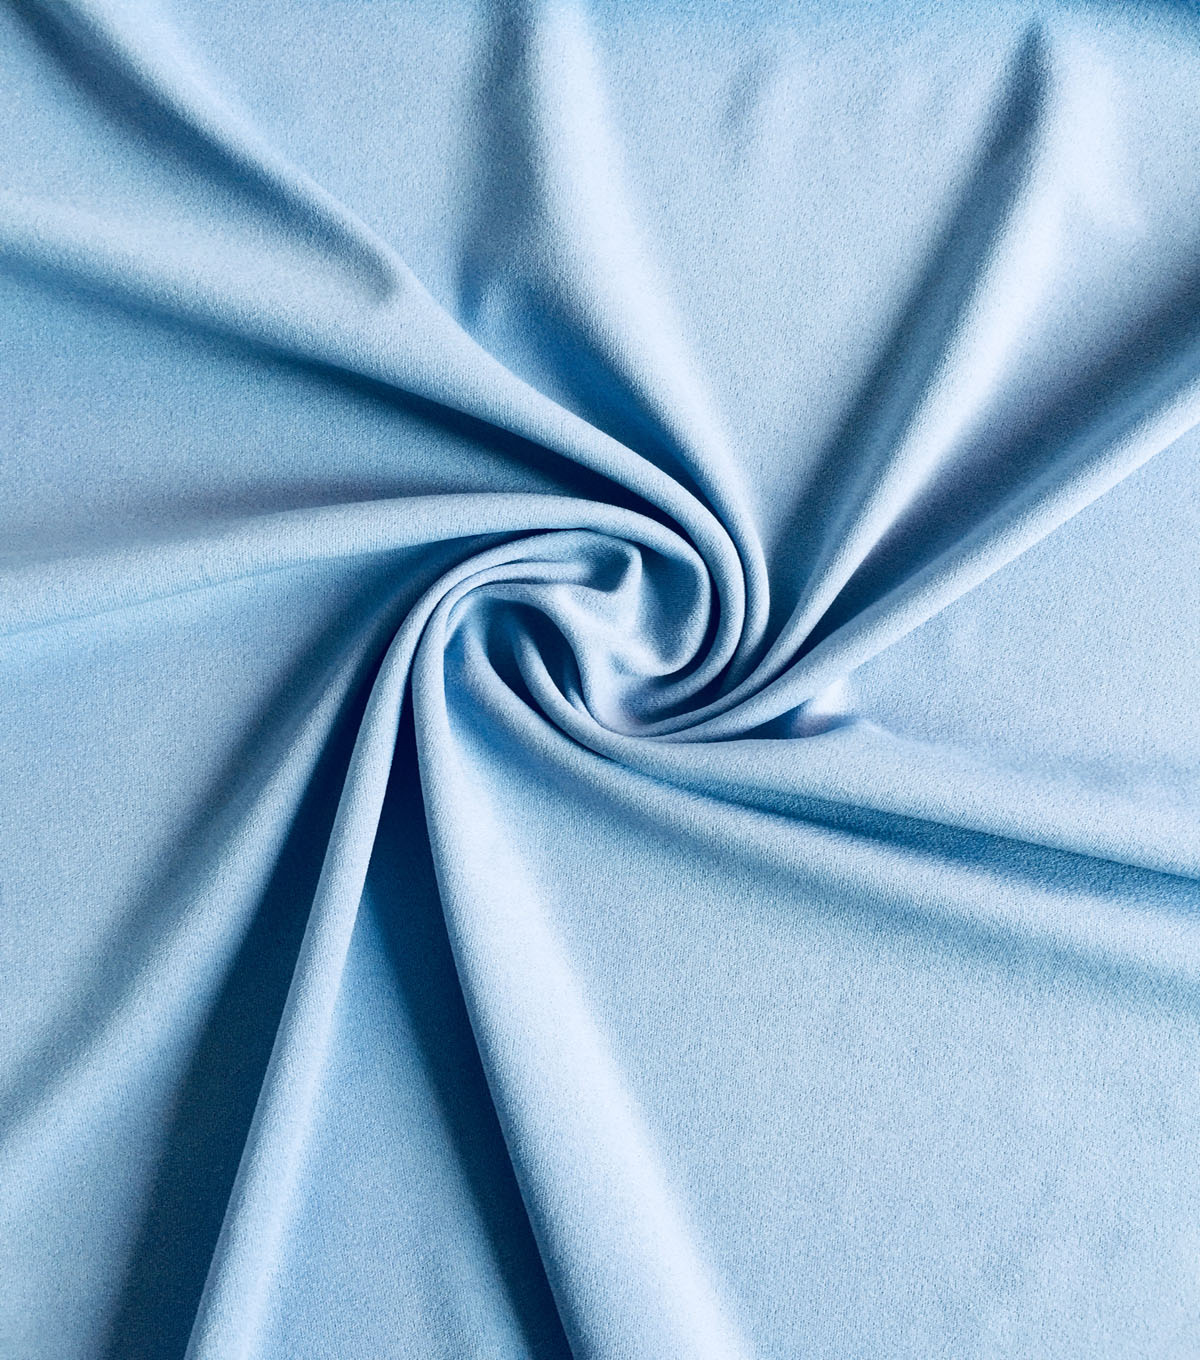 Spring Garden Stretch Knit Crepe Solid Fabric-Powder Blue